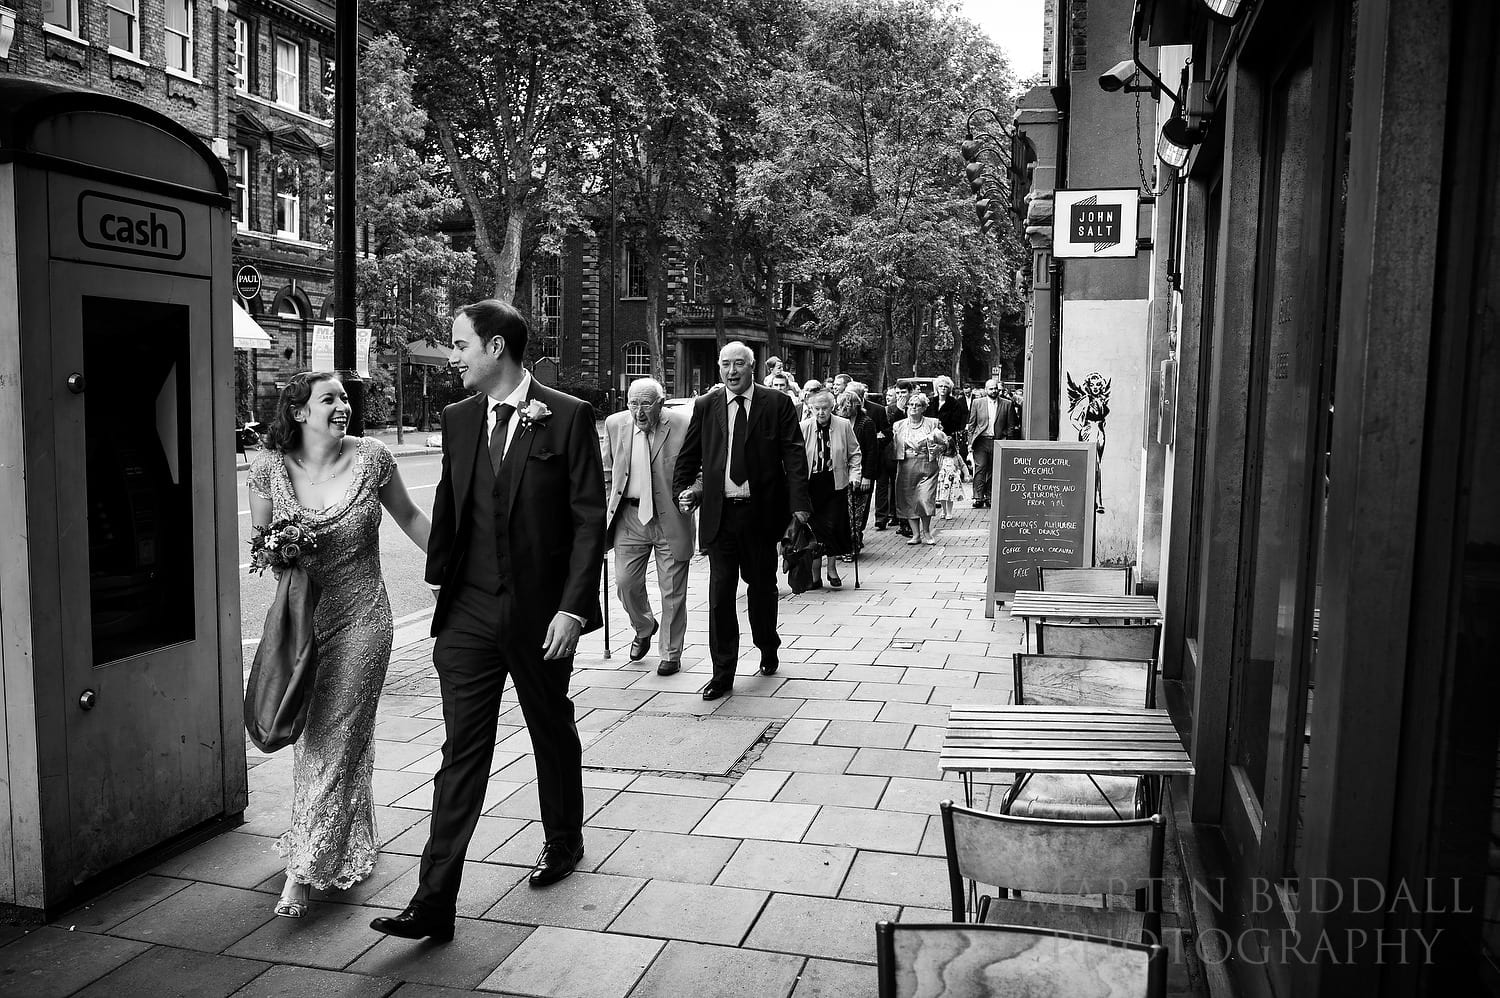 Bride and groom lead the way to the restaurant